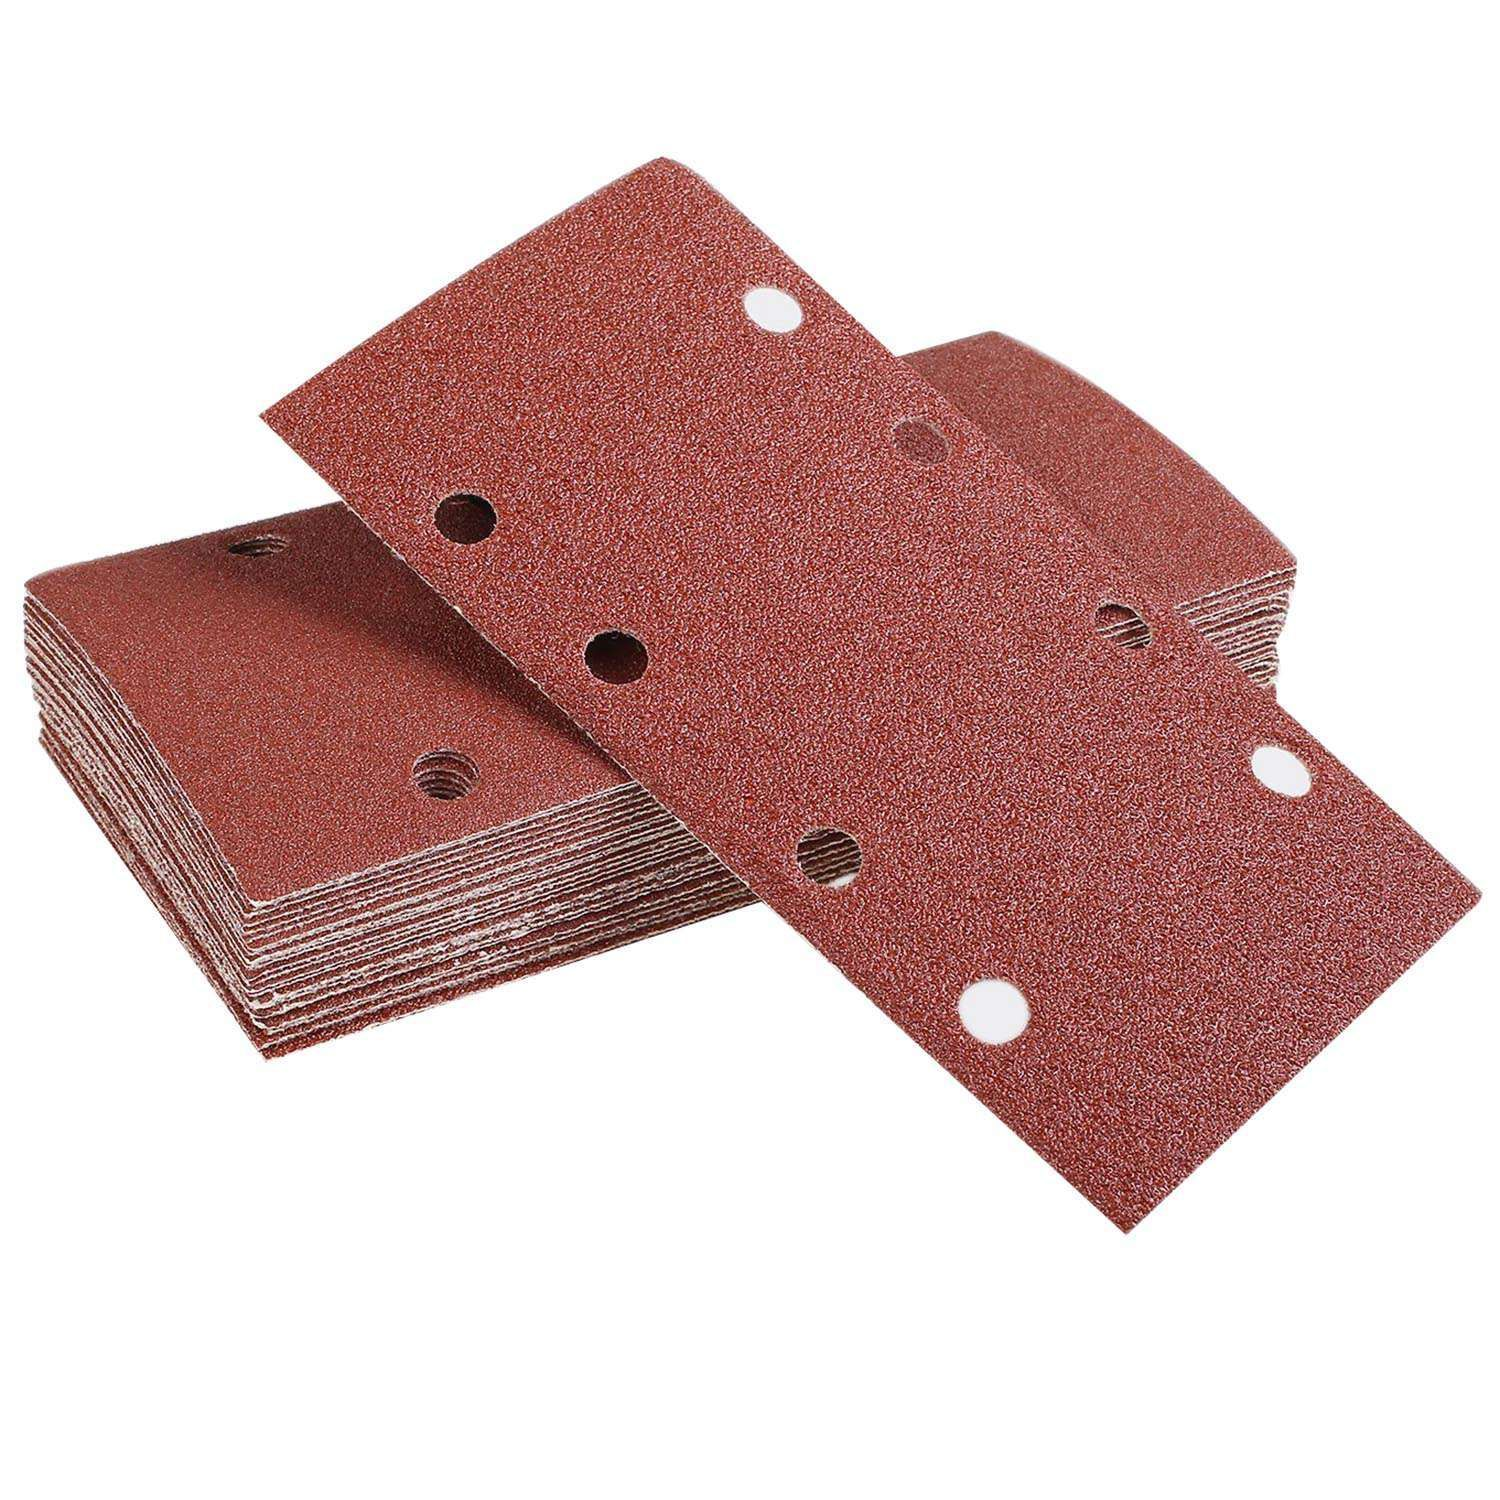 MYLB-25 Pcs Sanding Pads,Sanding Paper Hook And Loop Sand Sheet 93x185mm Punched 8 Holes Grits 40/60/80/120 Fit Sheet Orbital